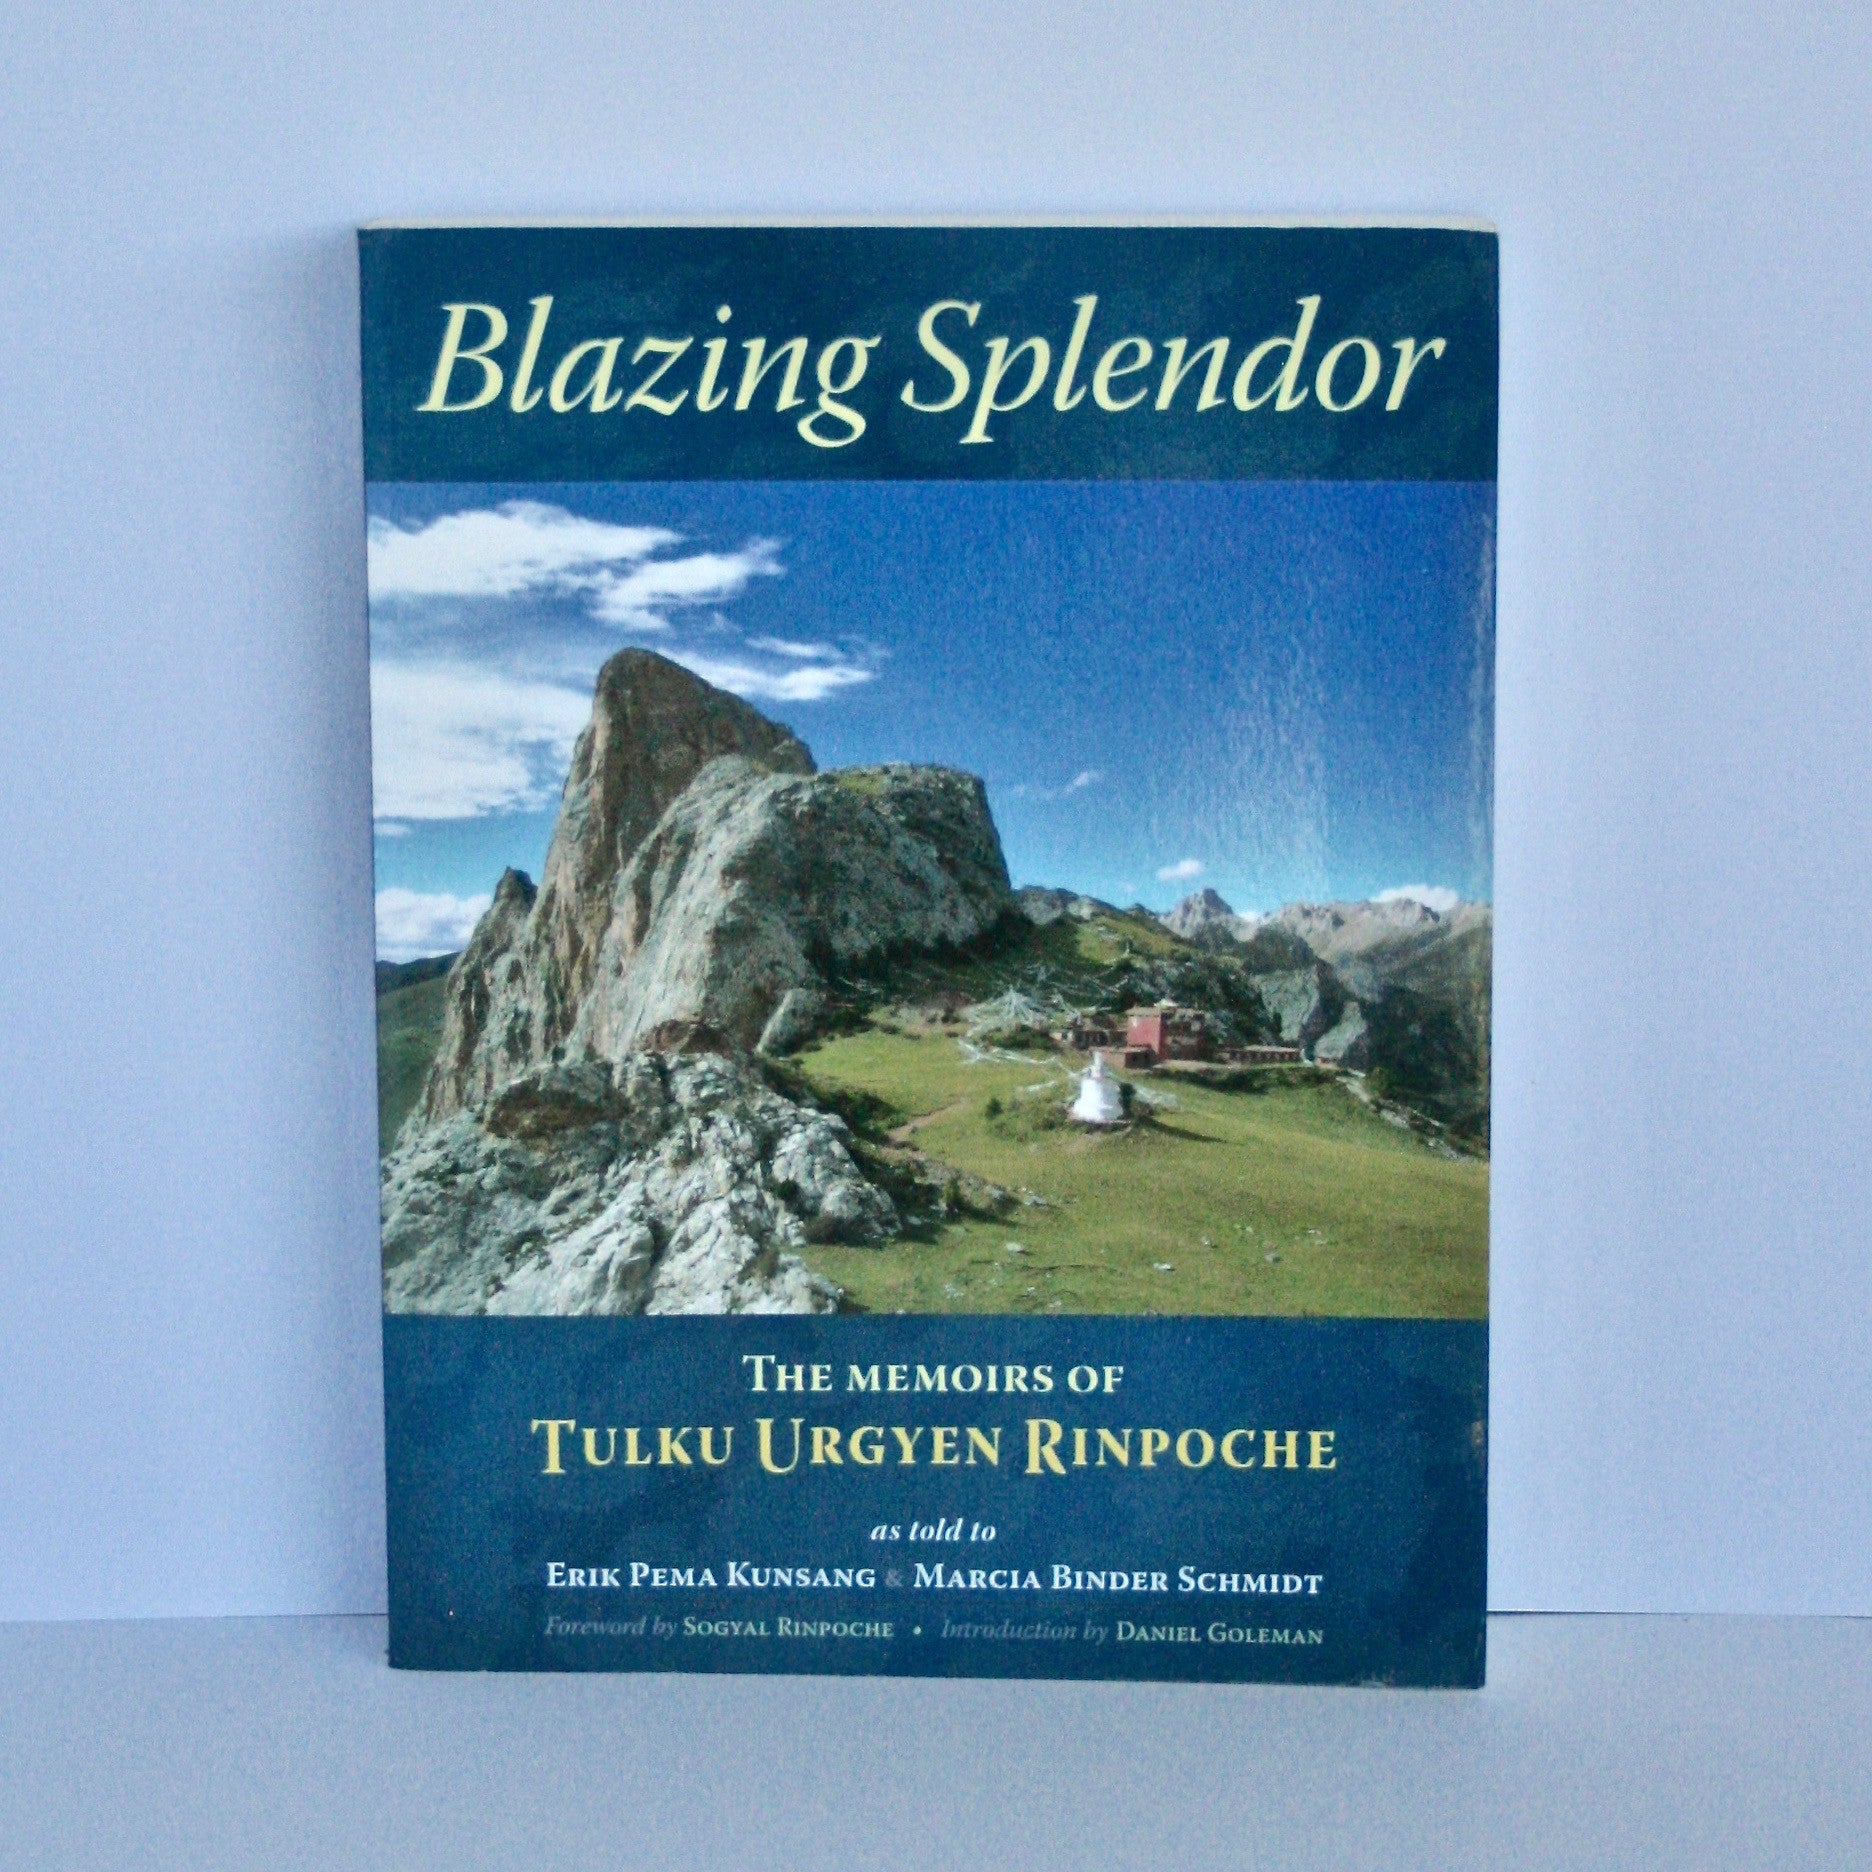 Blazing Splendor - The Memoirs of Tulku Urgyen Rinpoche as told by Eric Pema Kunsang and Marcia Binder Schmidt